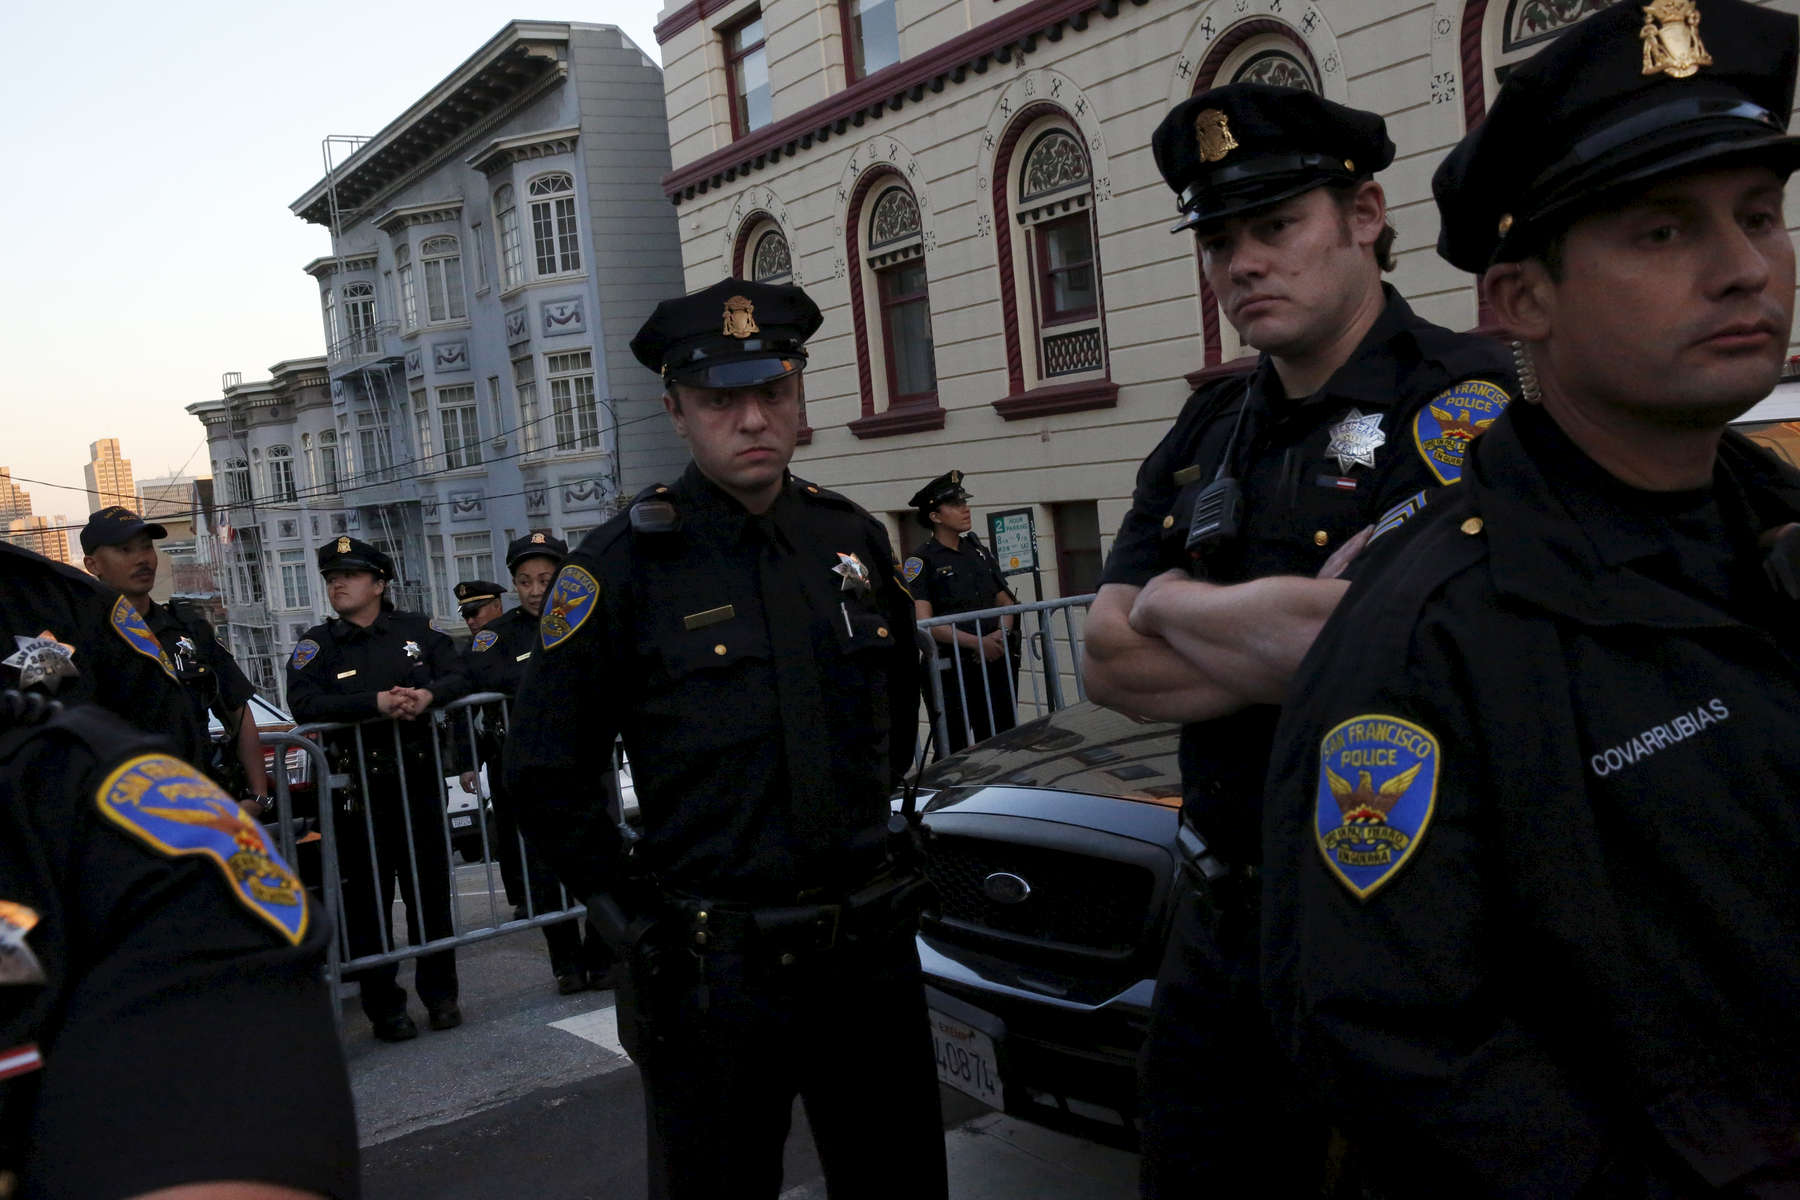 SFPD officers stand guard at a blockade at the end of the street near the entrance to a Hillary Clinton fundraising event in Nob Hill April 15, 2016 in San Francisco, Calif. The fundraiser was attended by George Clooney, among others. Dozens of protesters showed up and marched around the block to each entrance where police had set up barricades.